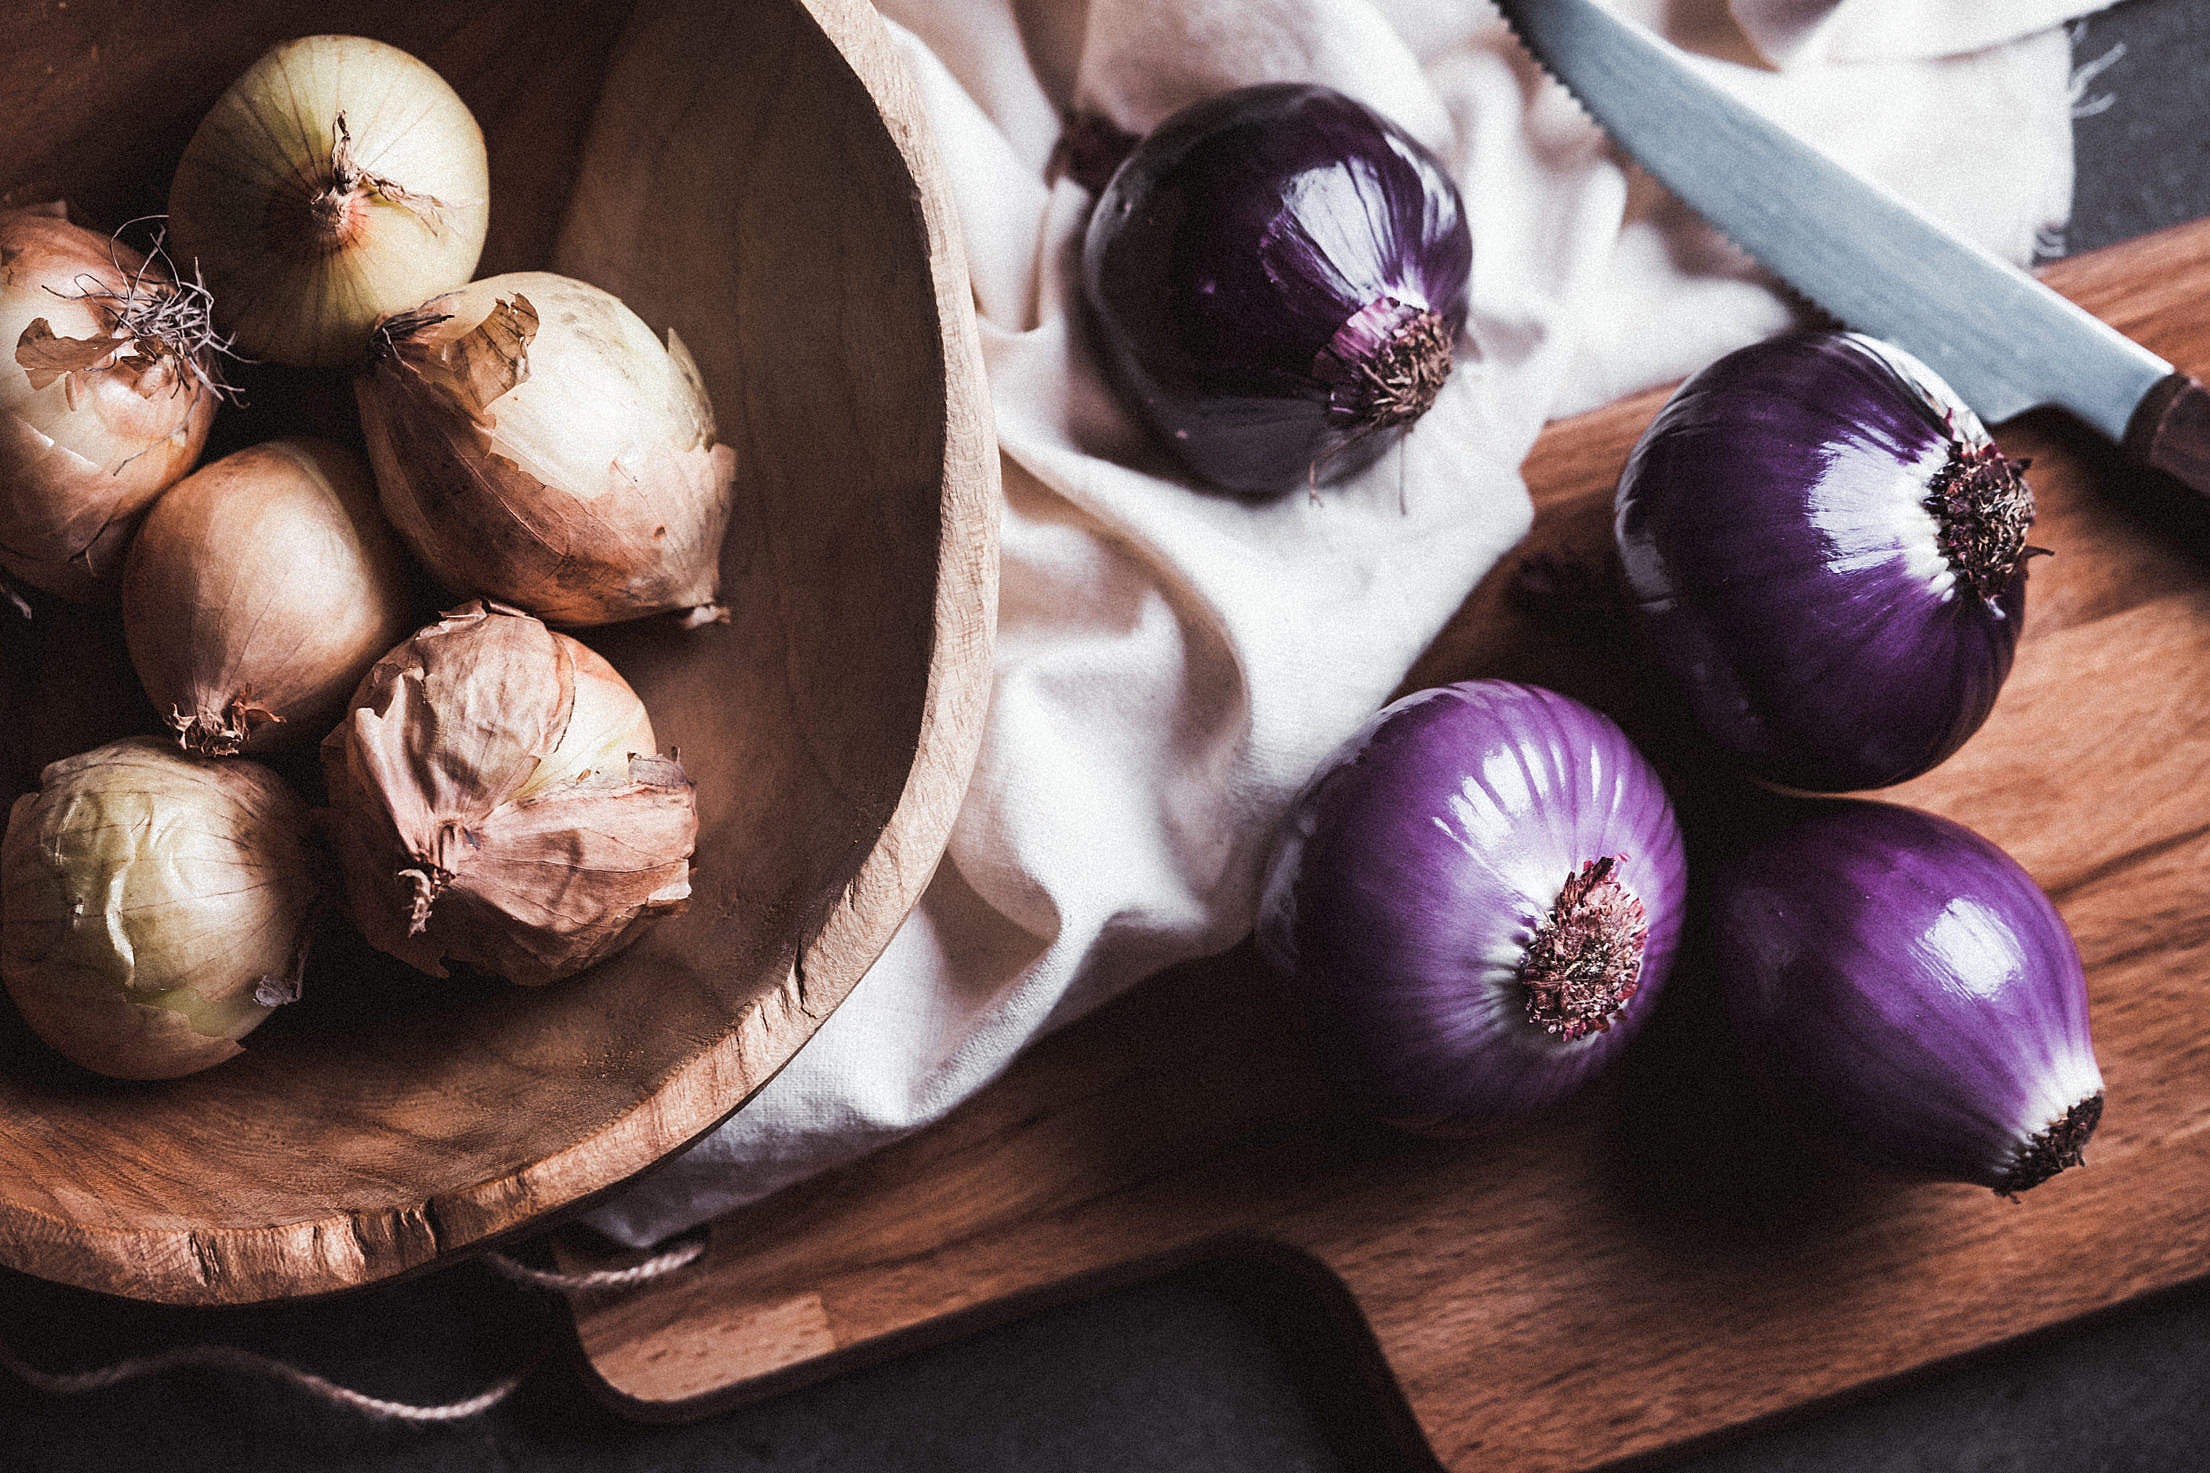 (click to download) Onions FREE Stock Photo